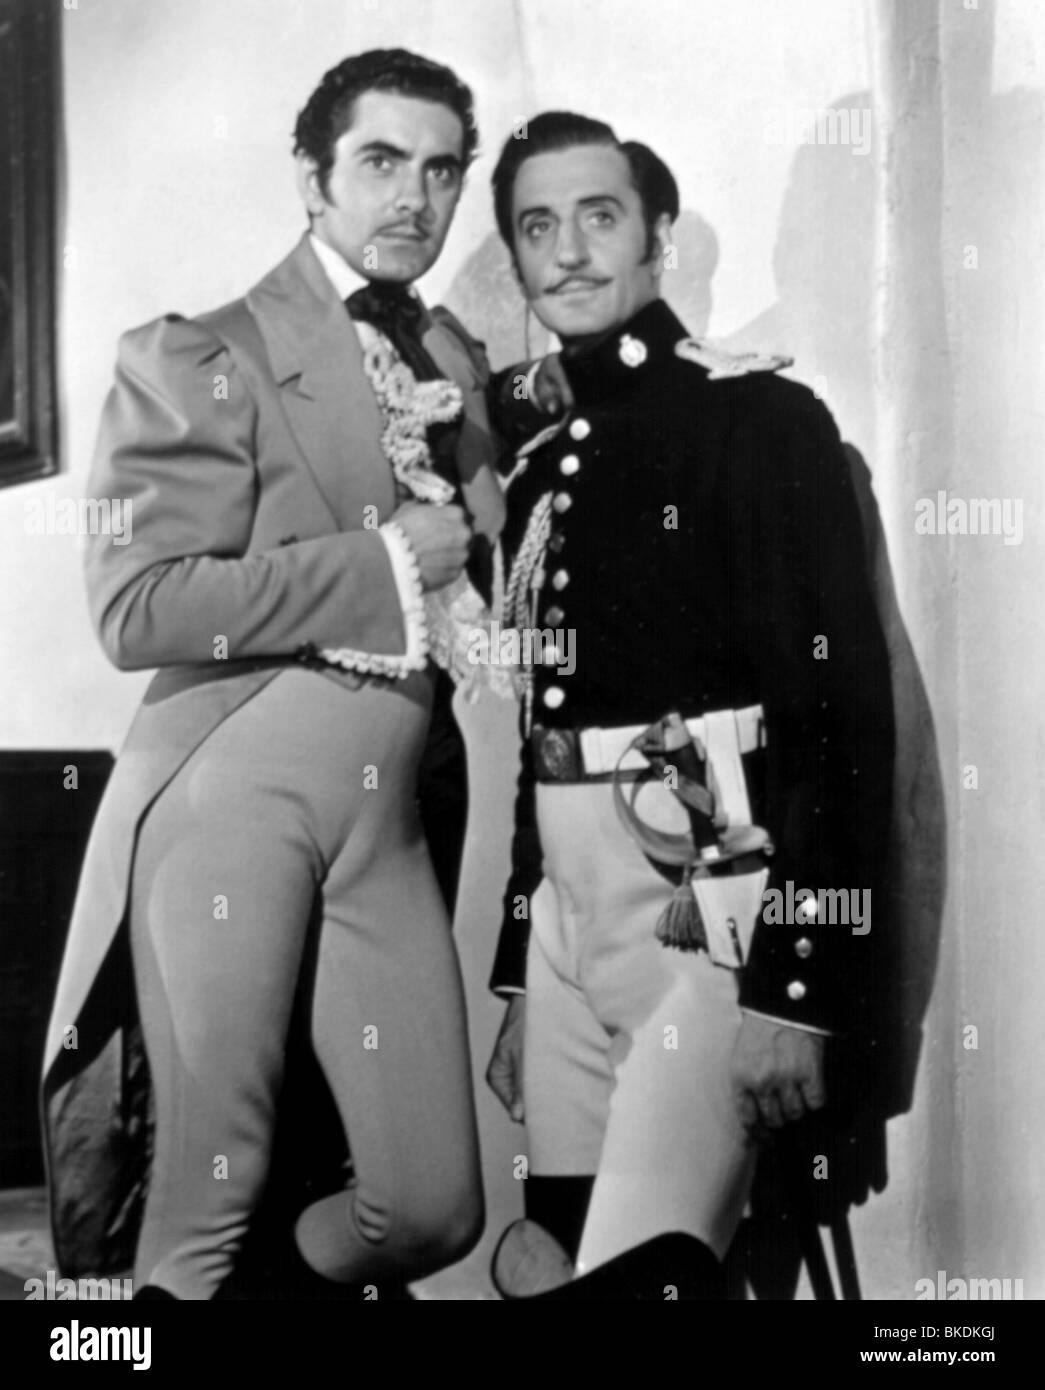 http://c8.alamy.com/comp/BKDKGJ/the-mask-of-zorro-1940-tyrone-power-basil-rathbone-moz-008-BKDKGJ.jpg